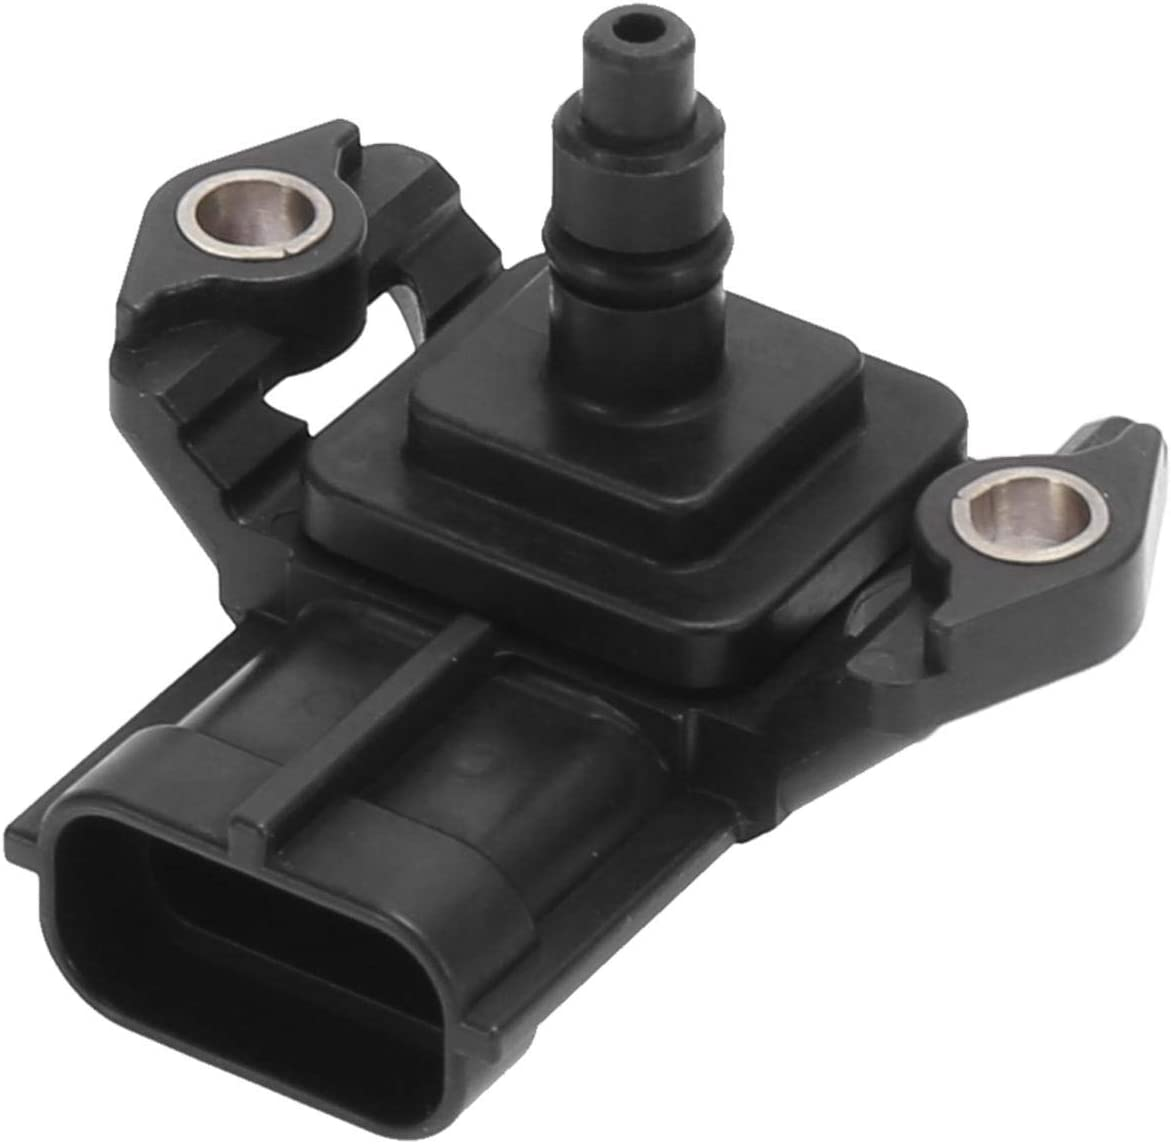 X AUTOHAUX Car Intake Manifold Direct sale of manufacturer Absolute Sensor 2262 Pressure Shipping included MAP